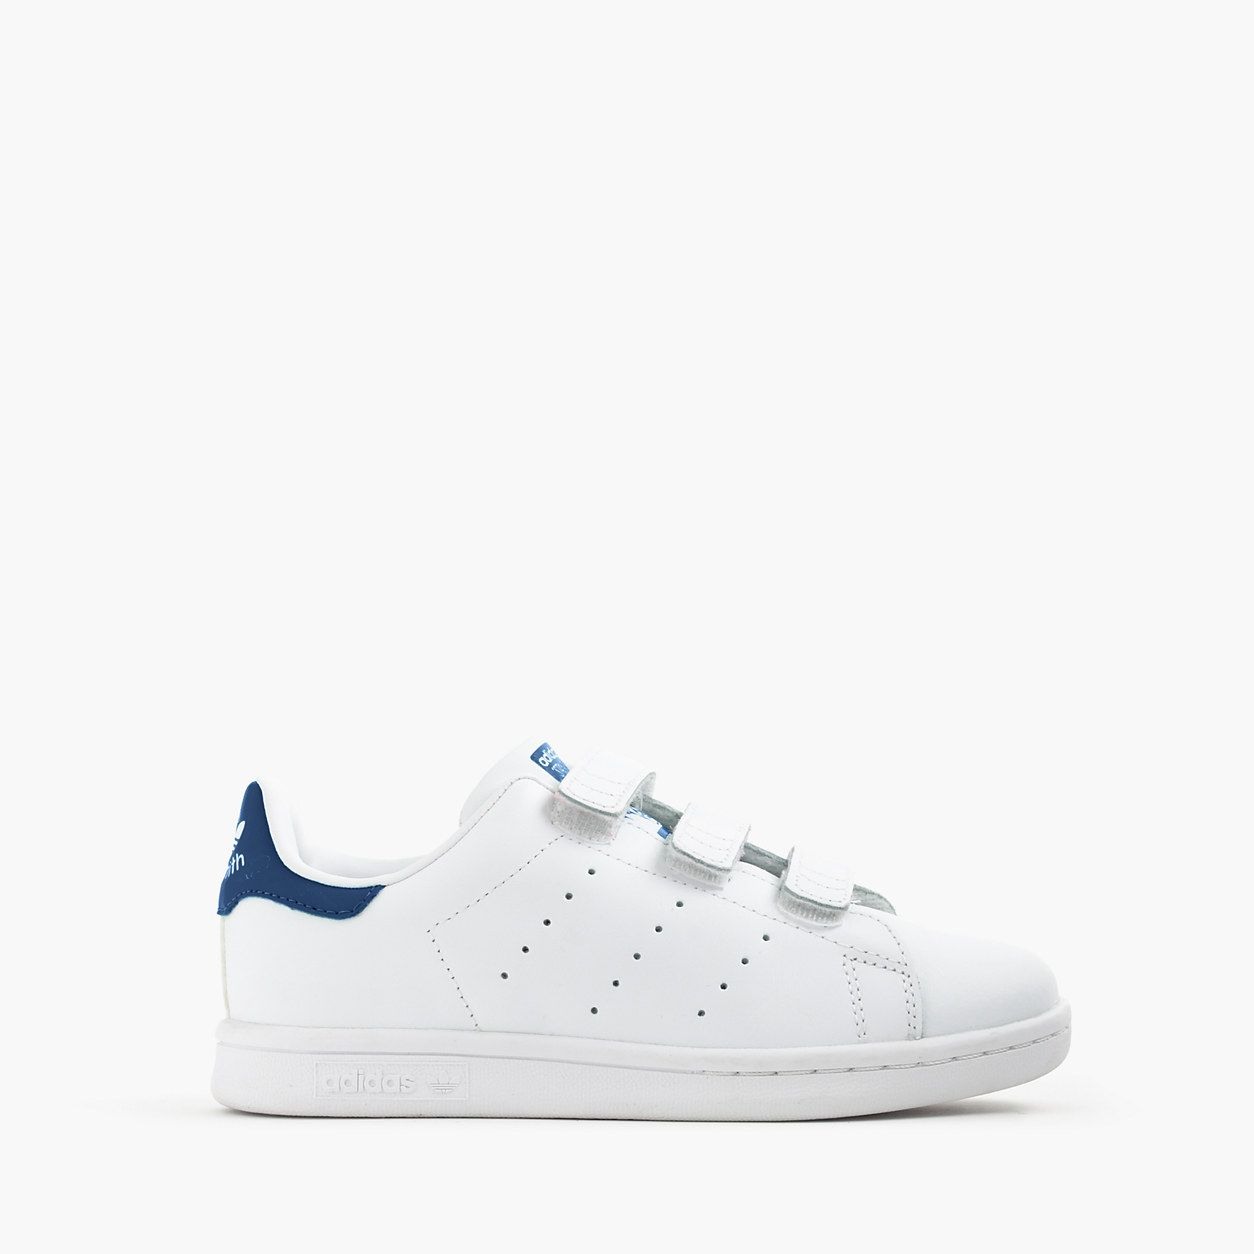 promo code cfb12 cddfa crewcuts Boys Adidas Stan Smith Sneakers In Larger Sizes ...